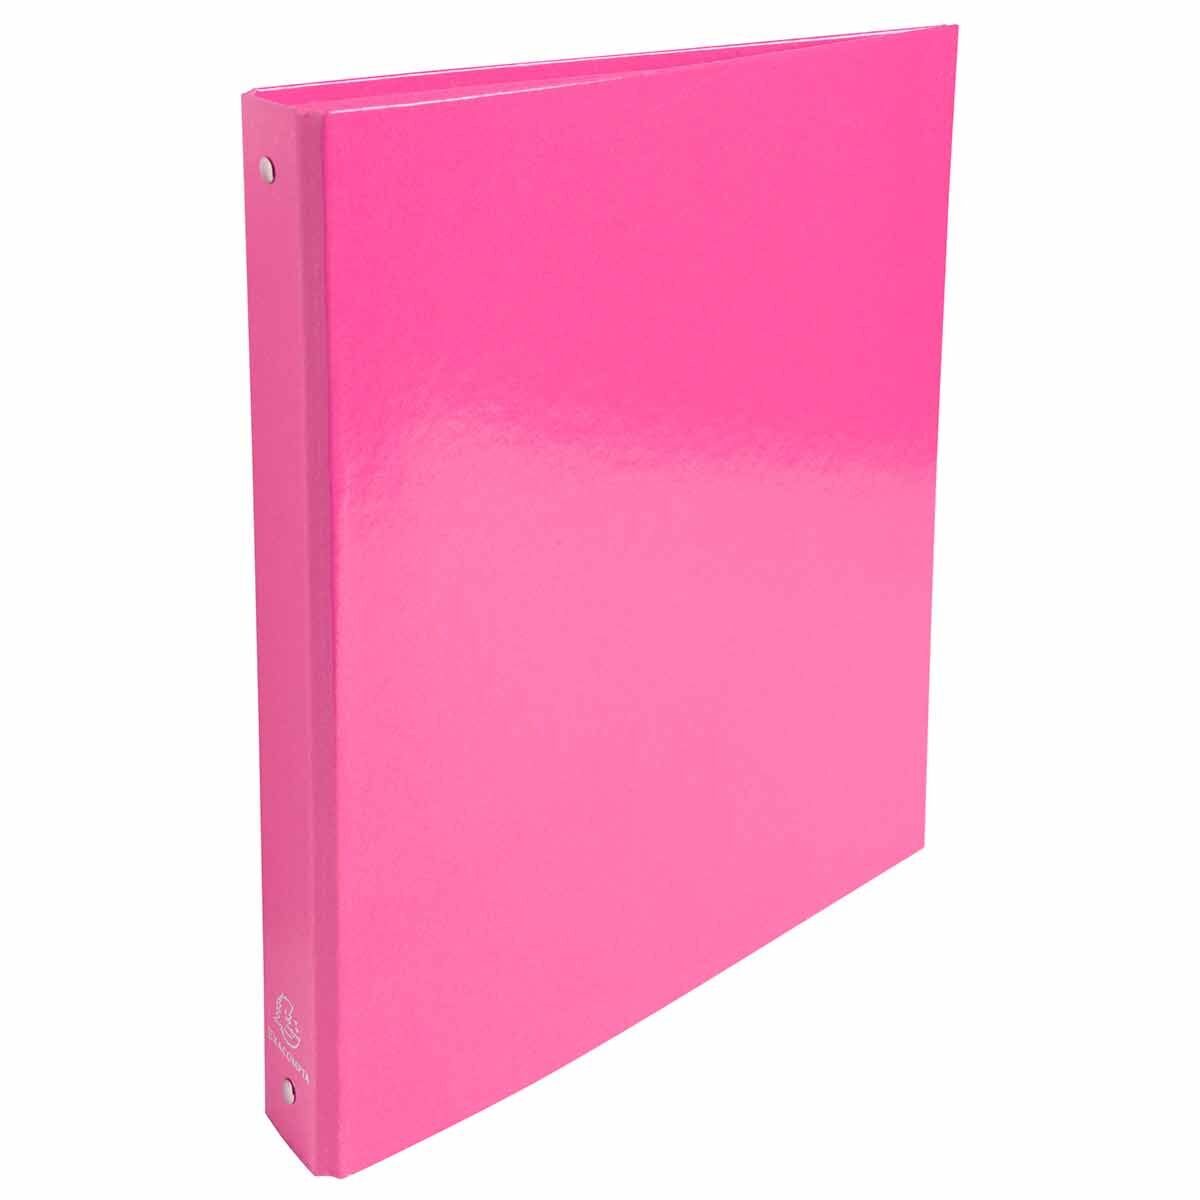 Exacompta Iderama Plastic Coated Ring Binder 4 Ring 30mm A4 Pack of 10 Pink